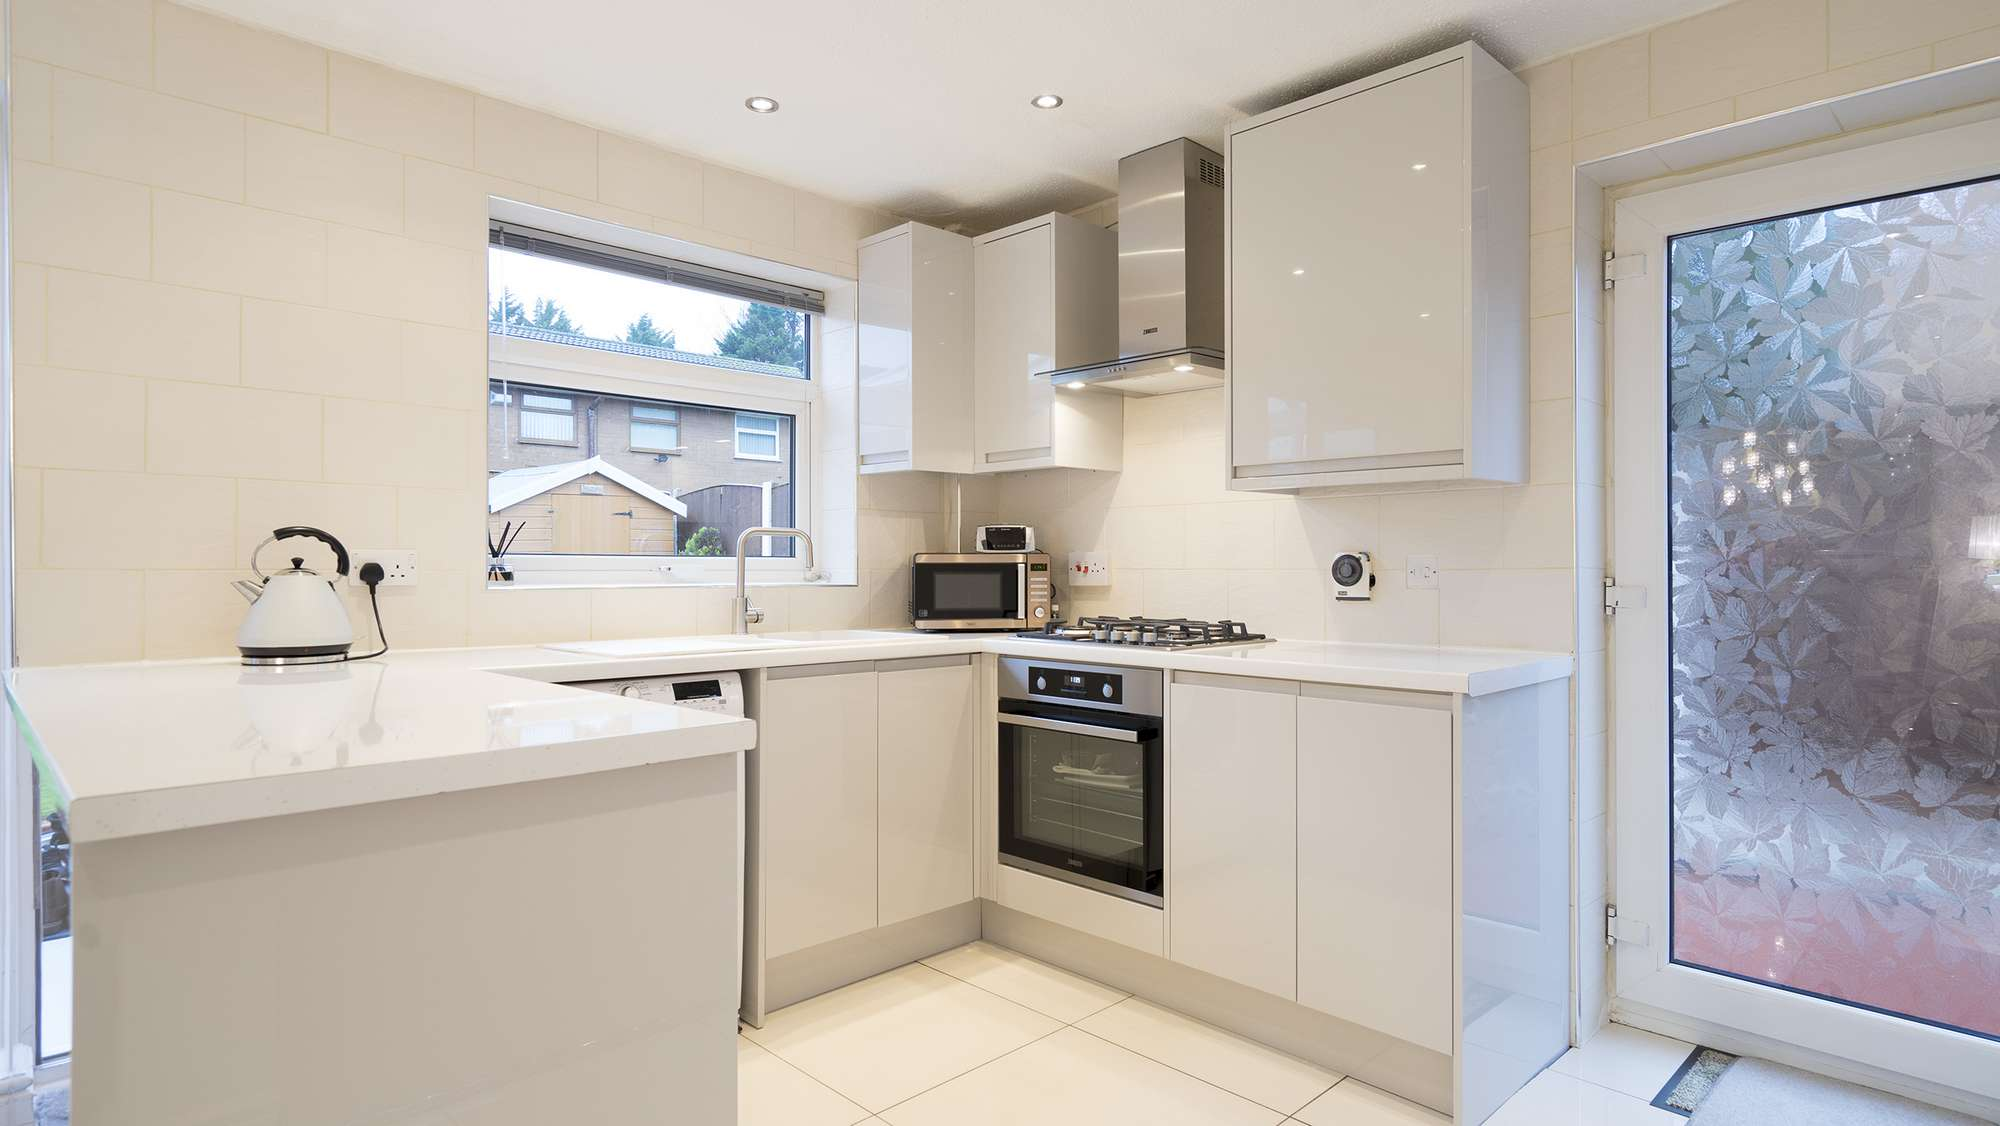 Another angle of the handleless kitchen featuring lots of storage space and low maintenance finishes.